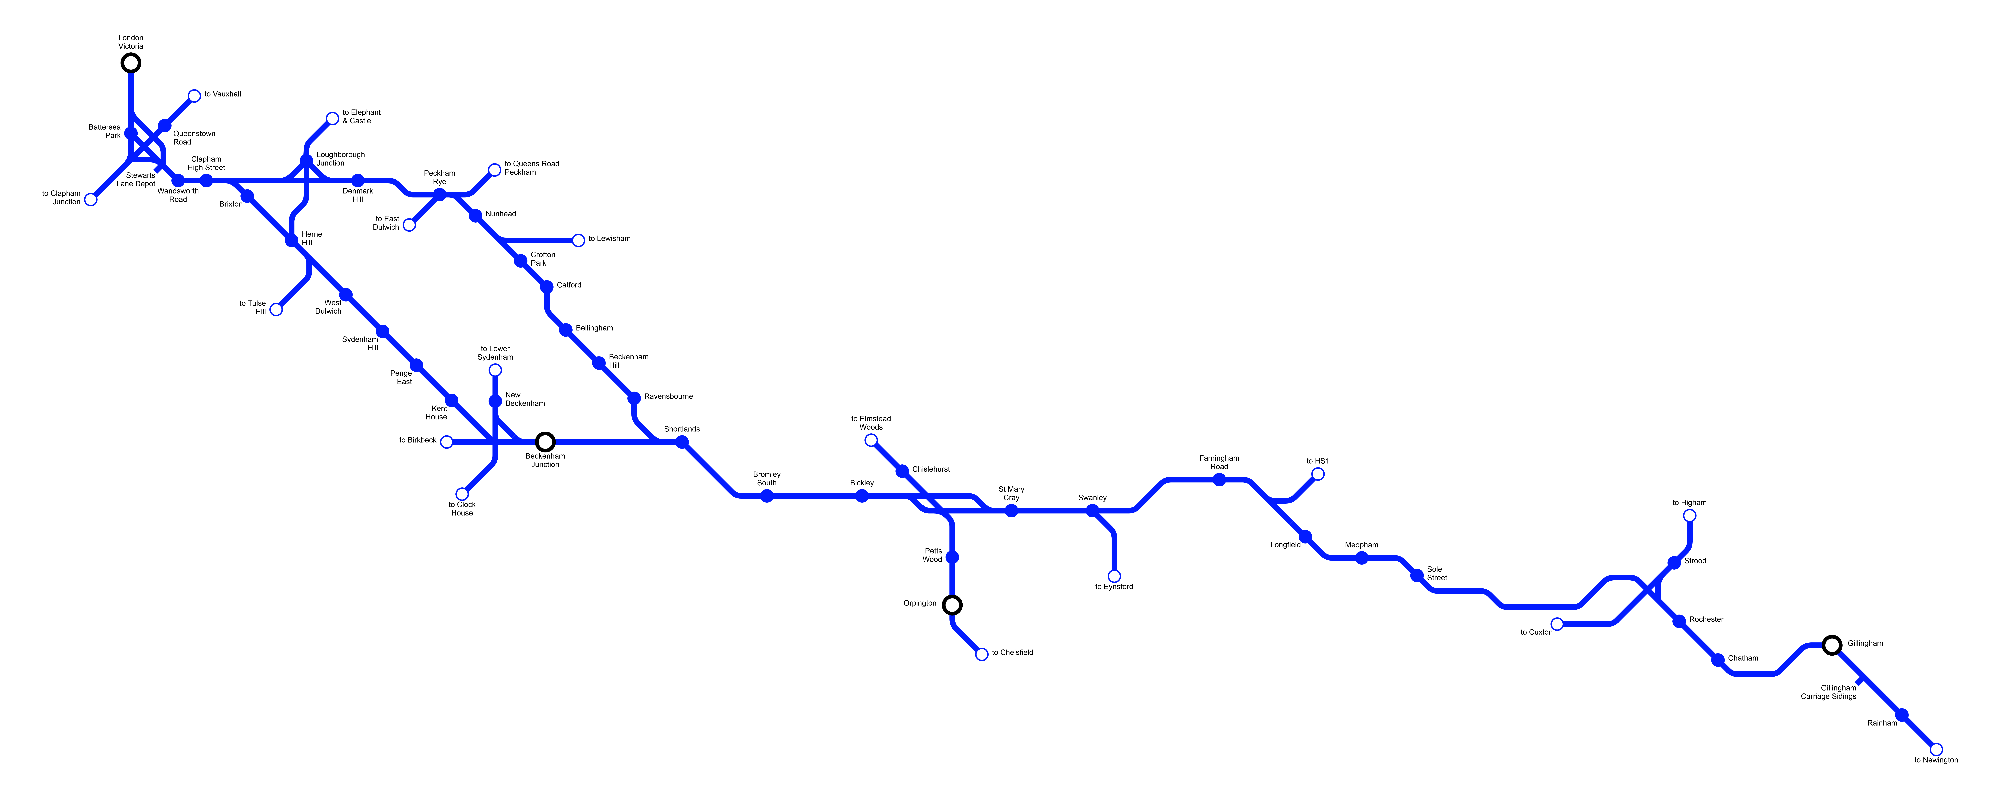 Image showing a map of the Chatham Main Line - London-Gillingham route